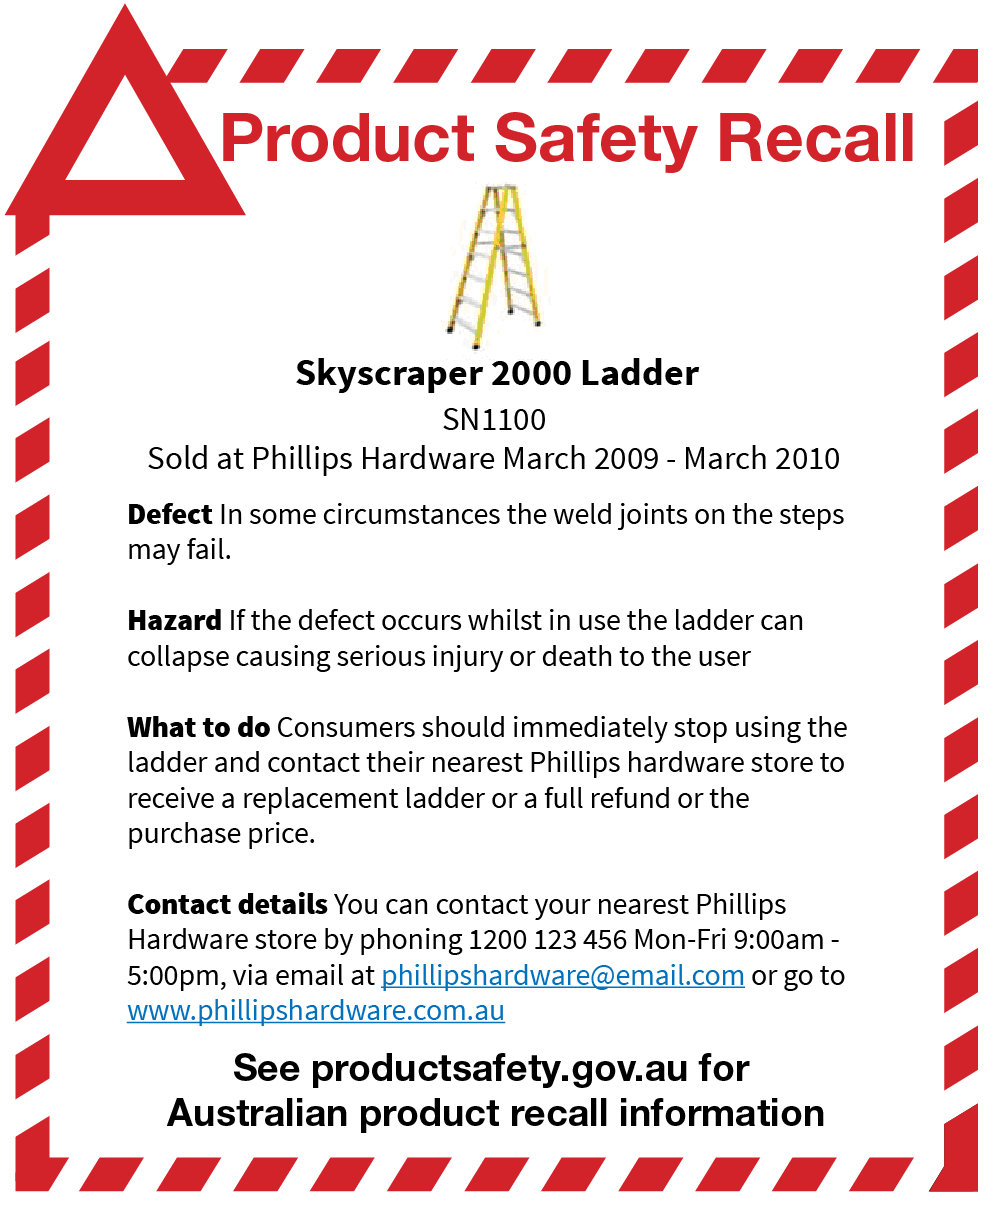 Recall advertisement templates product safety australia sample recall notice spiritdancerdesigns